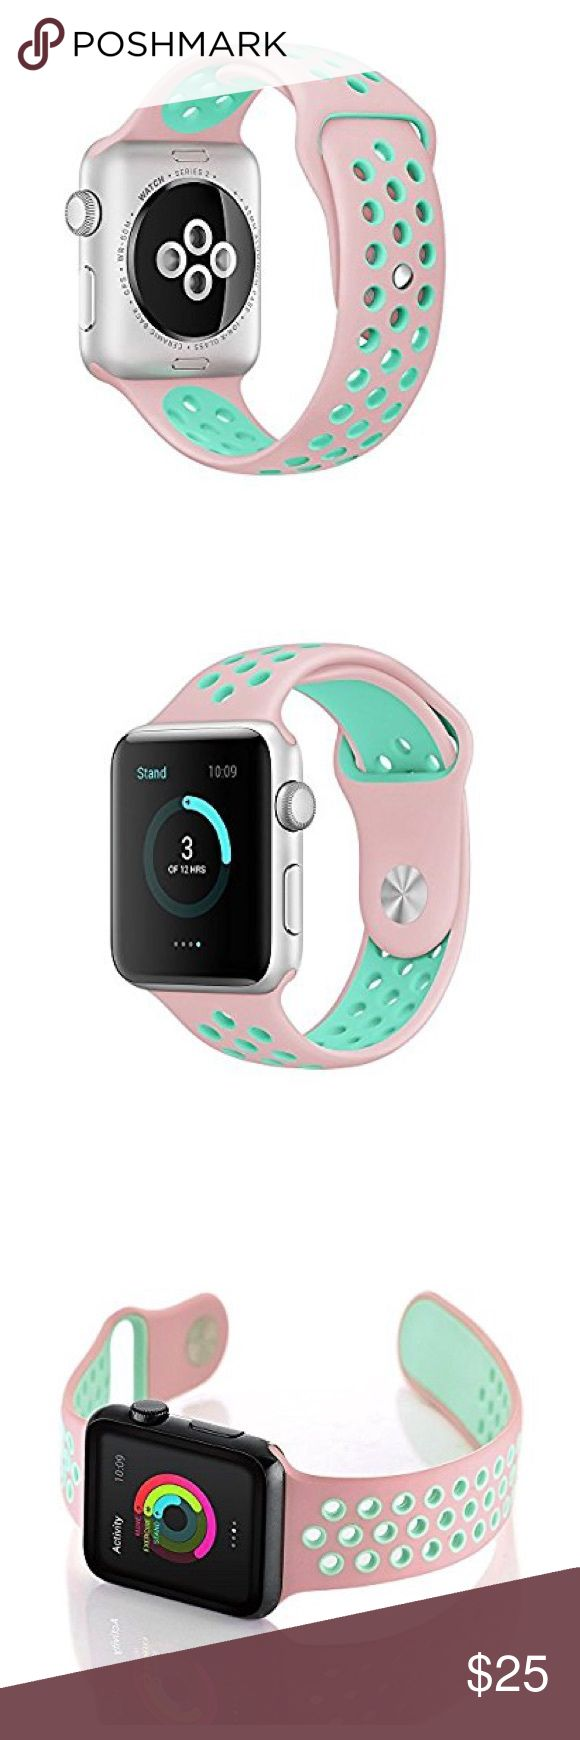 "38mm Nike Style Apple Watch Band Brand new 38mm ""Nike Style""Apple Watch Sports Band (Watch is not included) Great Gift for your friends and Love ones !!! Accessories Watches"